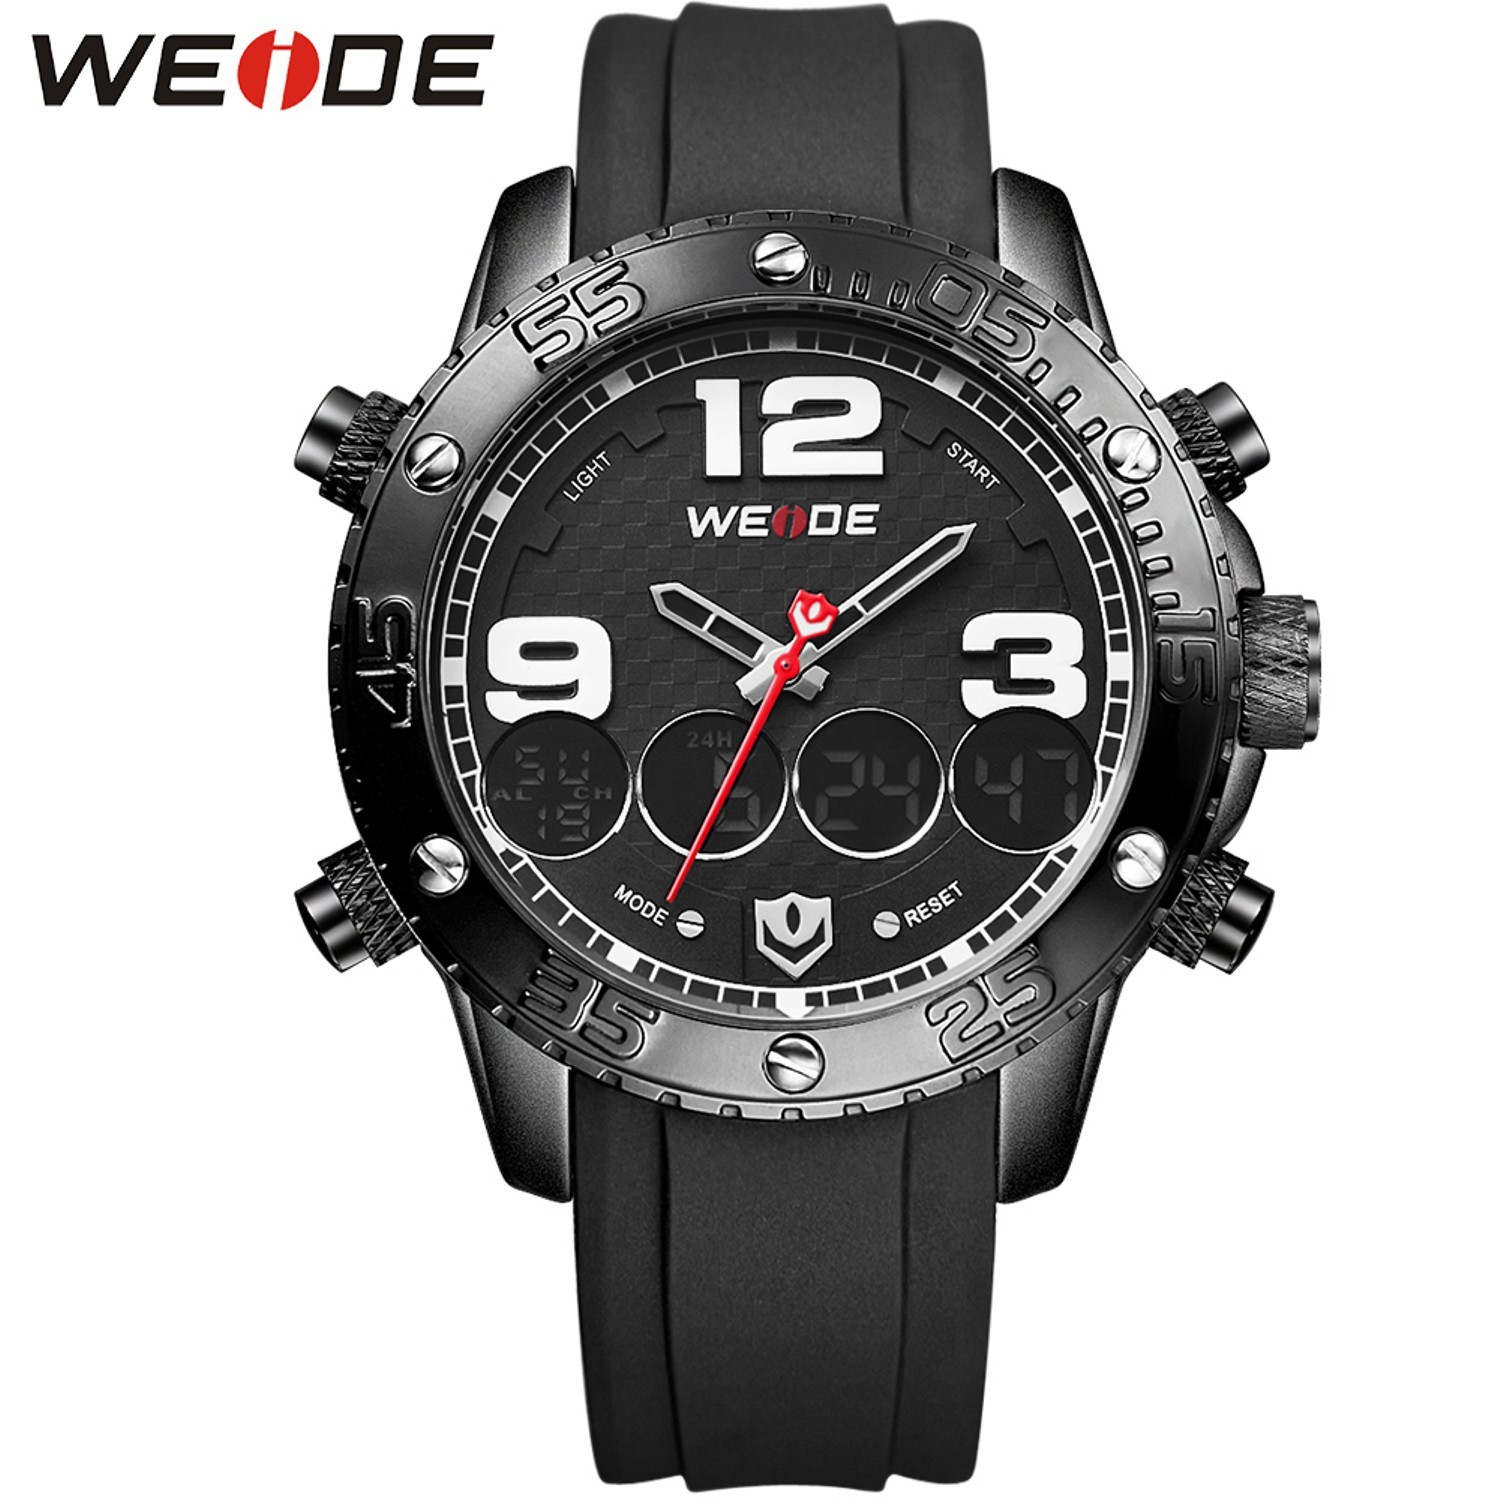 WEIDE-Brand-Digital-Date-Sport-Watches-For-Men-PU-Band-Outdoor-Analog-LCD-Digital-Display-Quartz_1500x1500_STRETCH_373.jpg